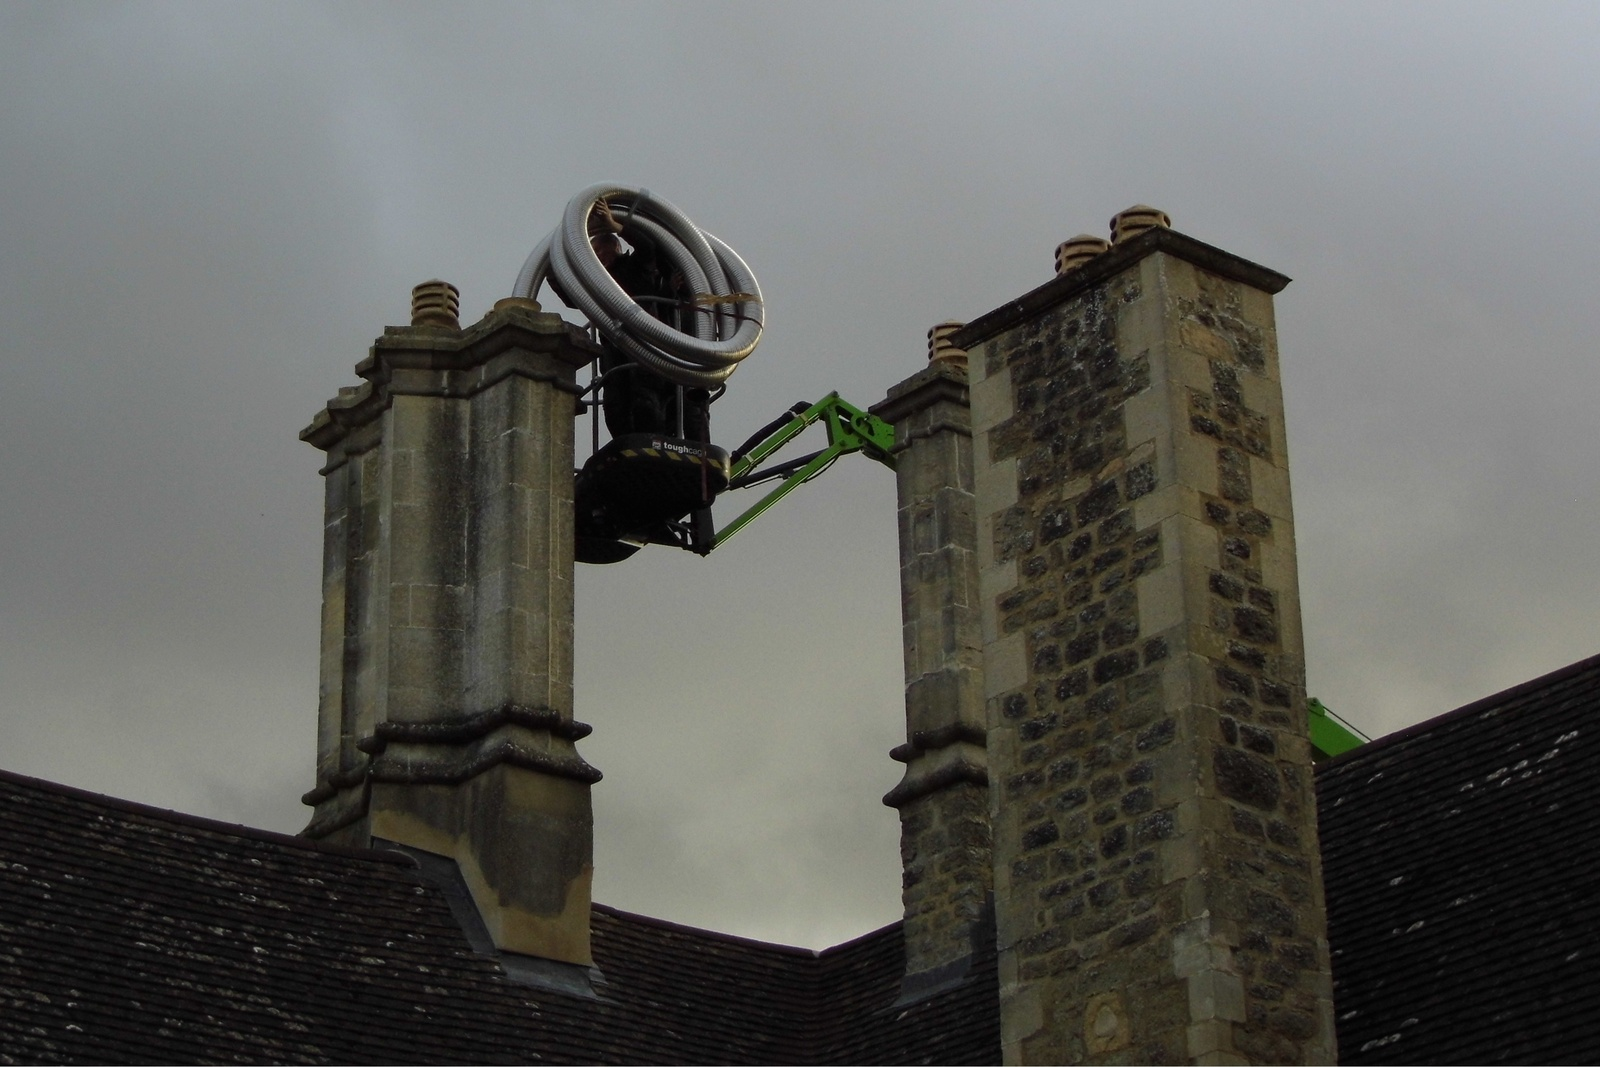 Lining the chimney of a tall listed property - Littlemore, Oxford